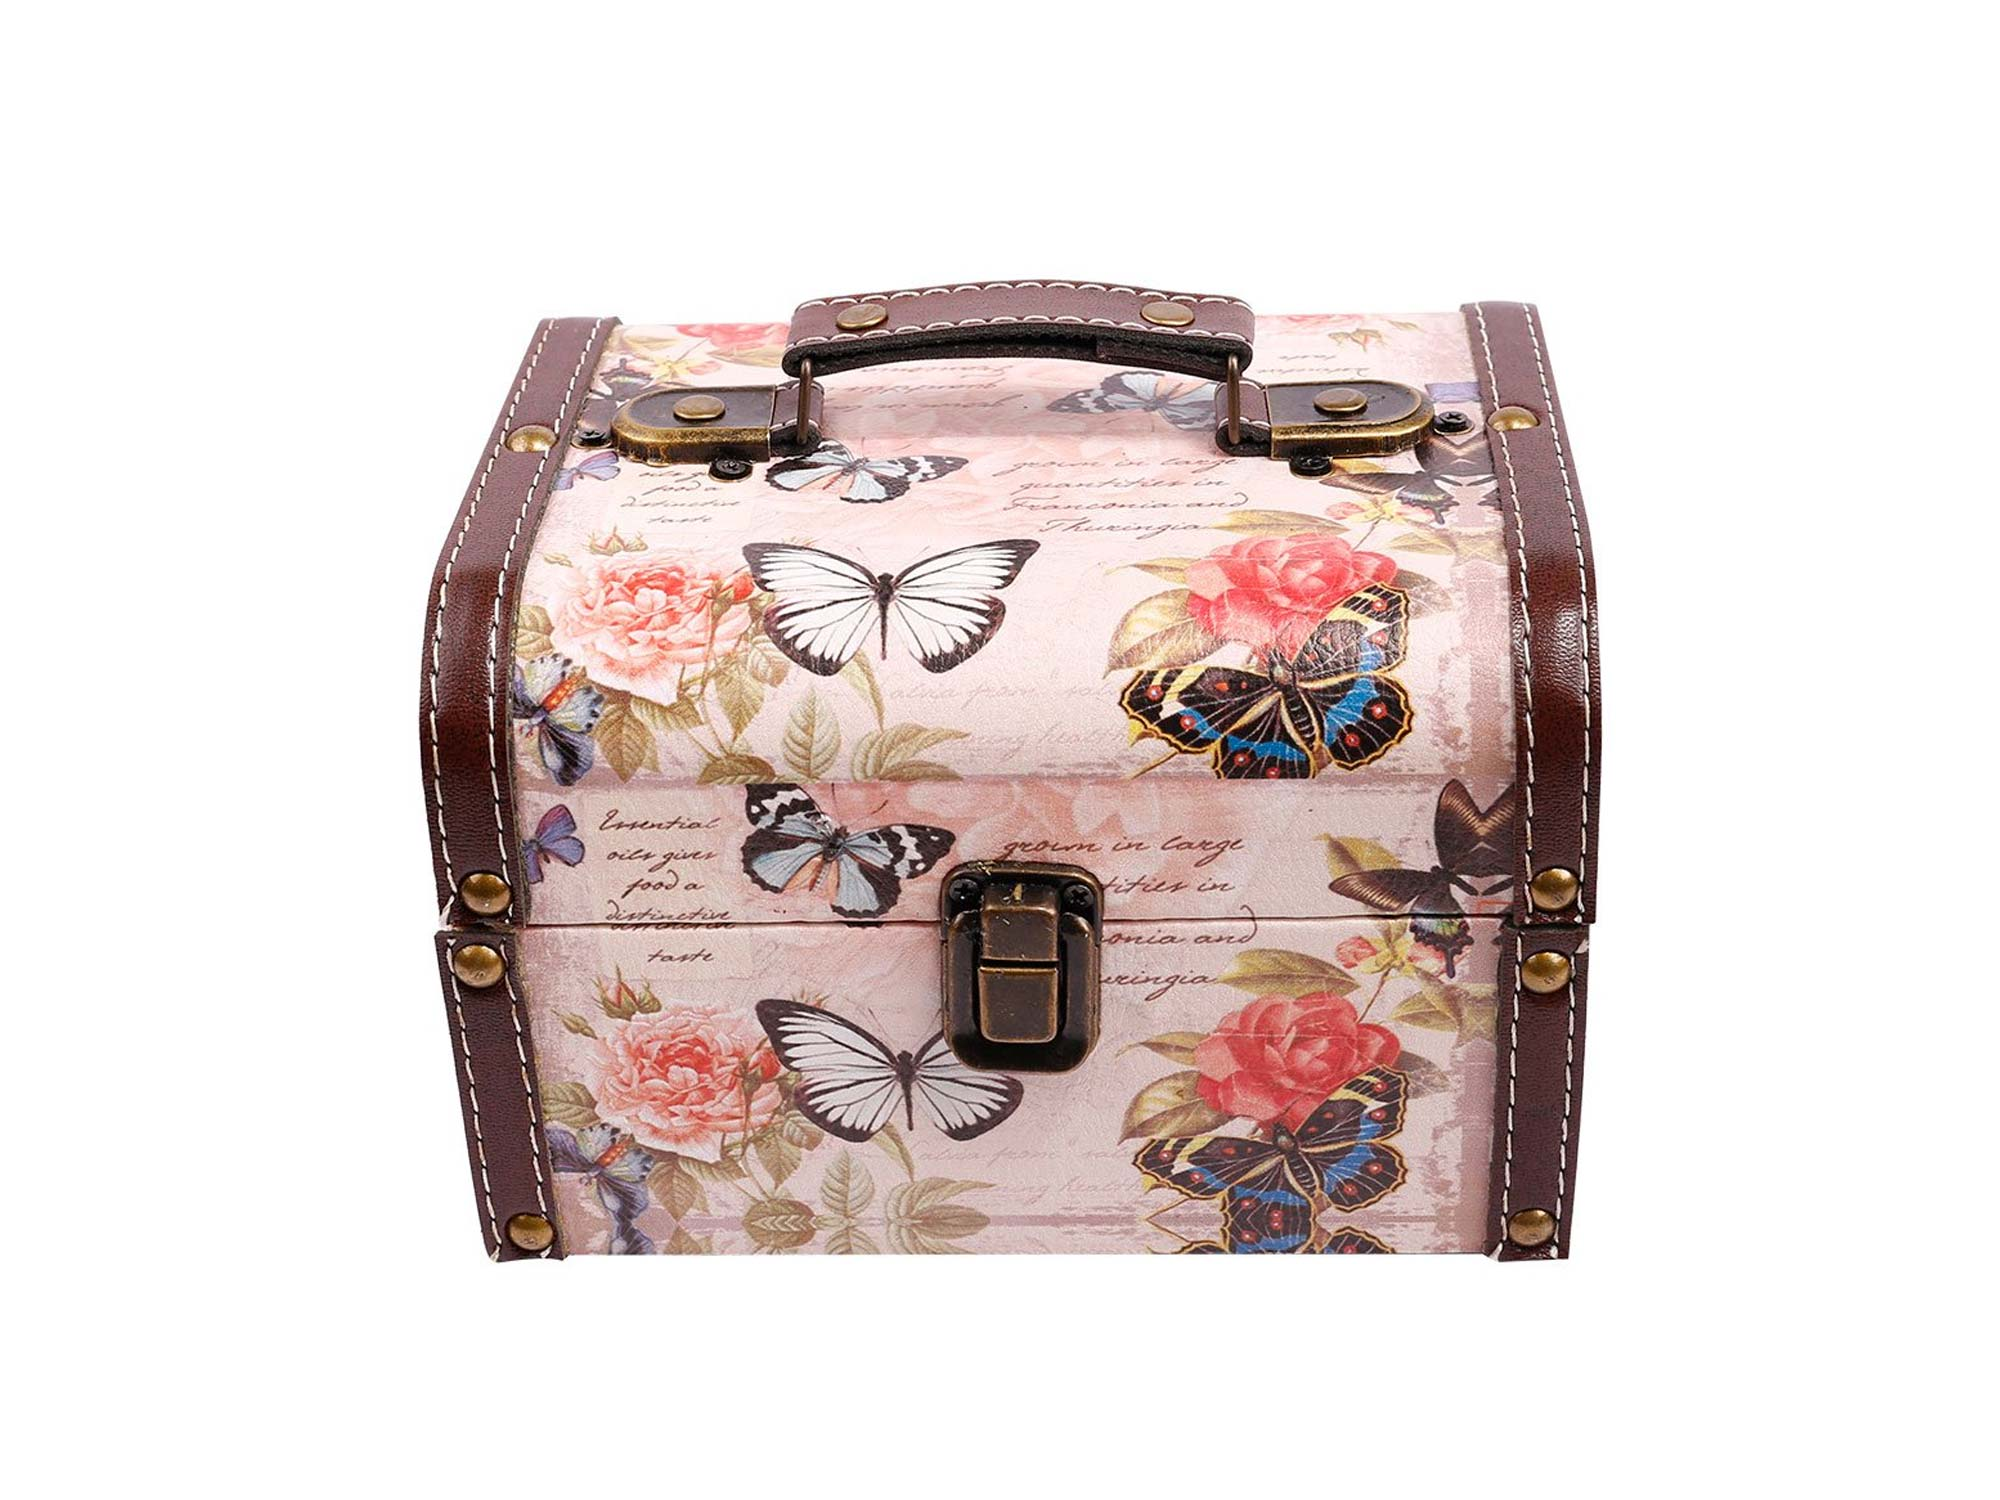 WaaHome Butterfly Wooden Treasure Boxes Decorative Jewelry Keepsakes Box